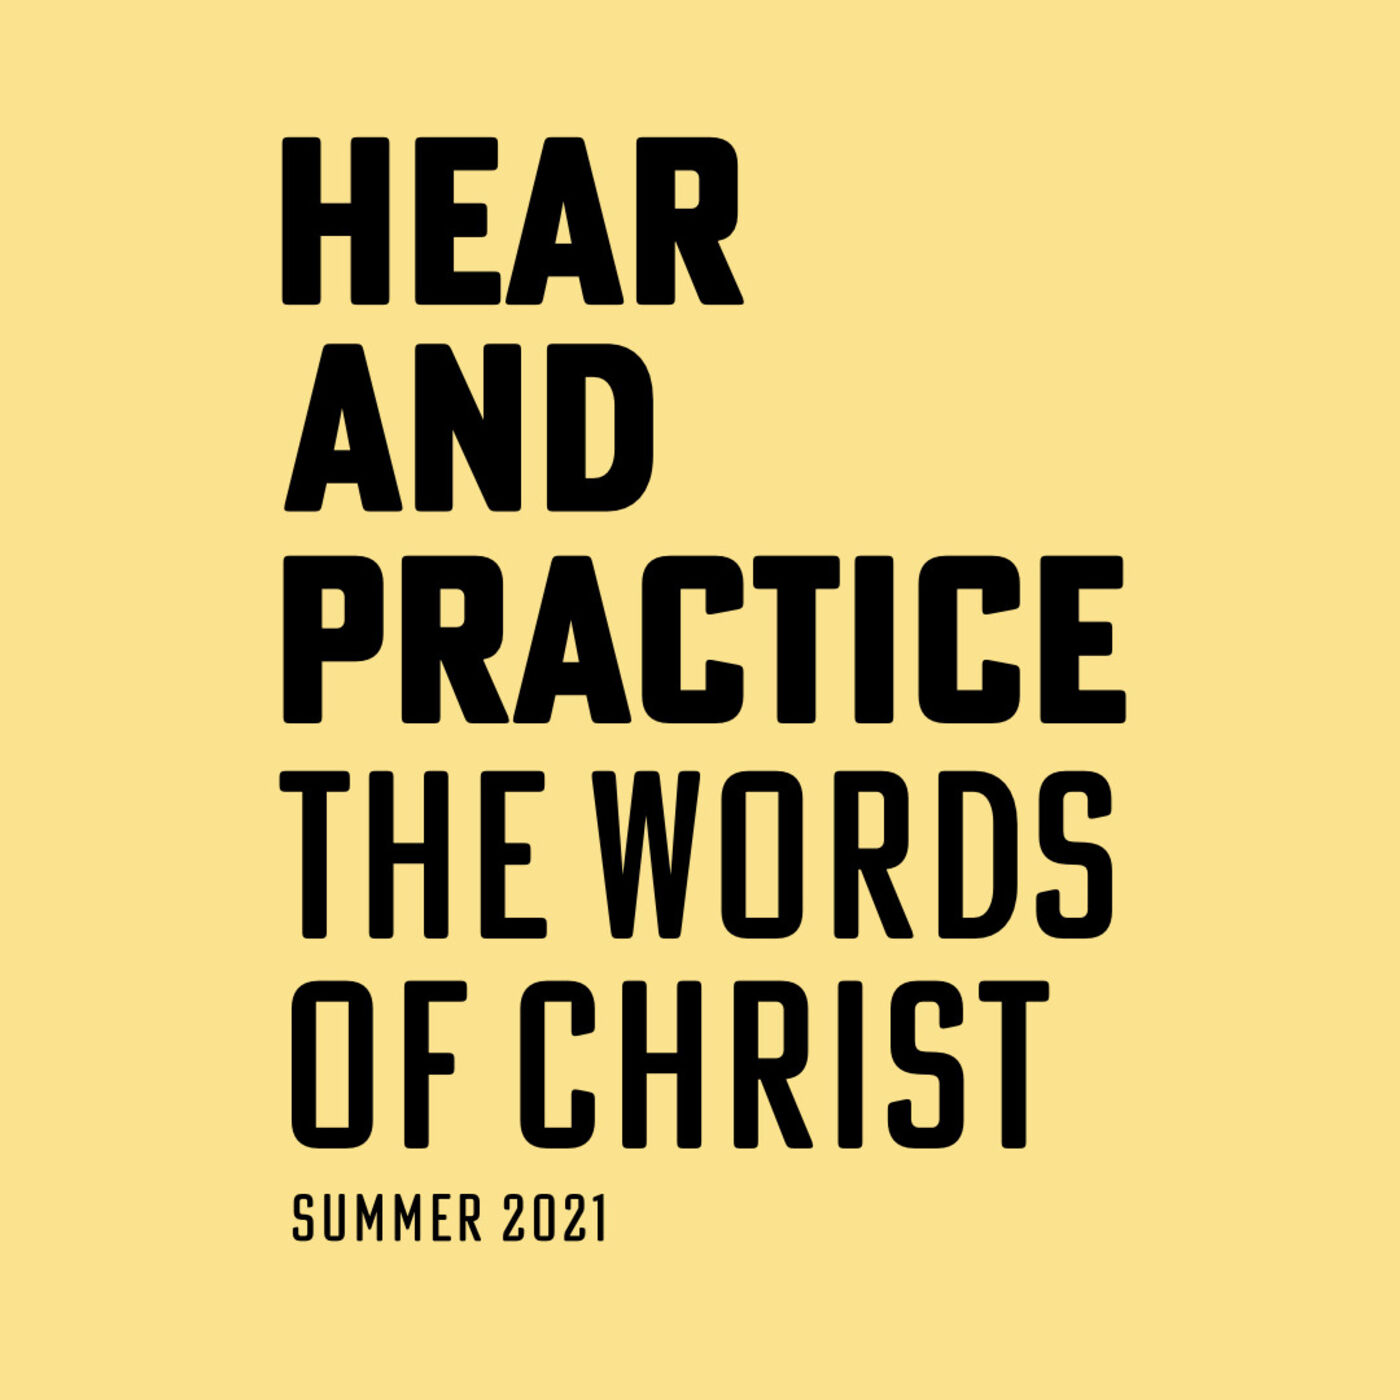 Hear and Practice: The Words of Christ | Matthew 23:1-28 » July 11, 2021